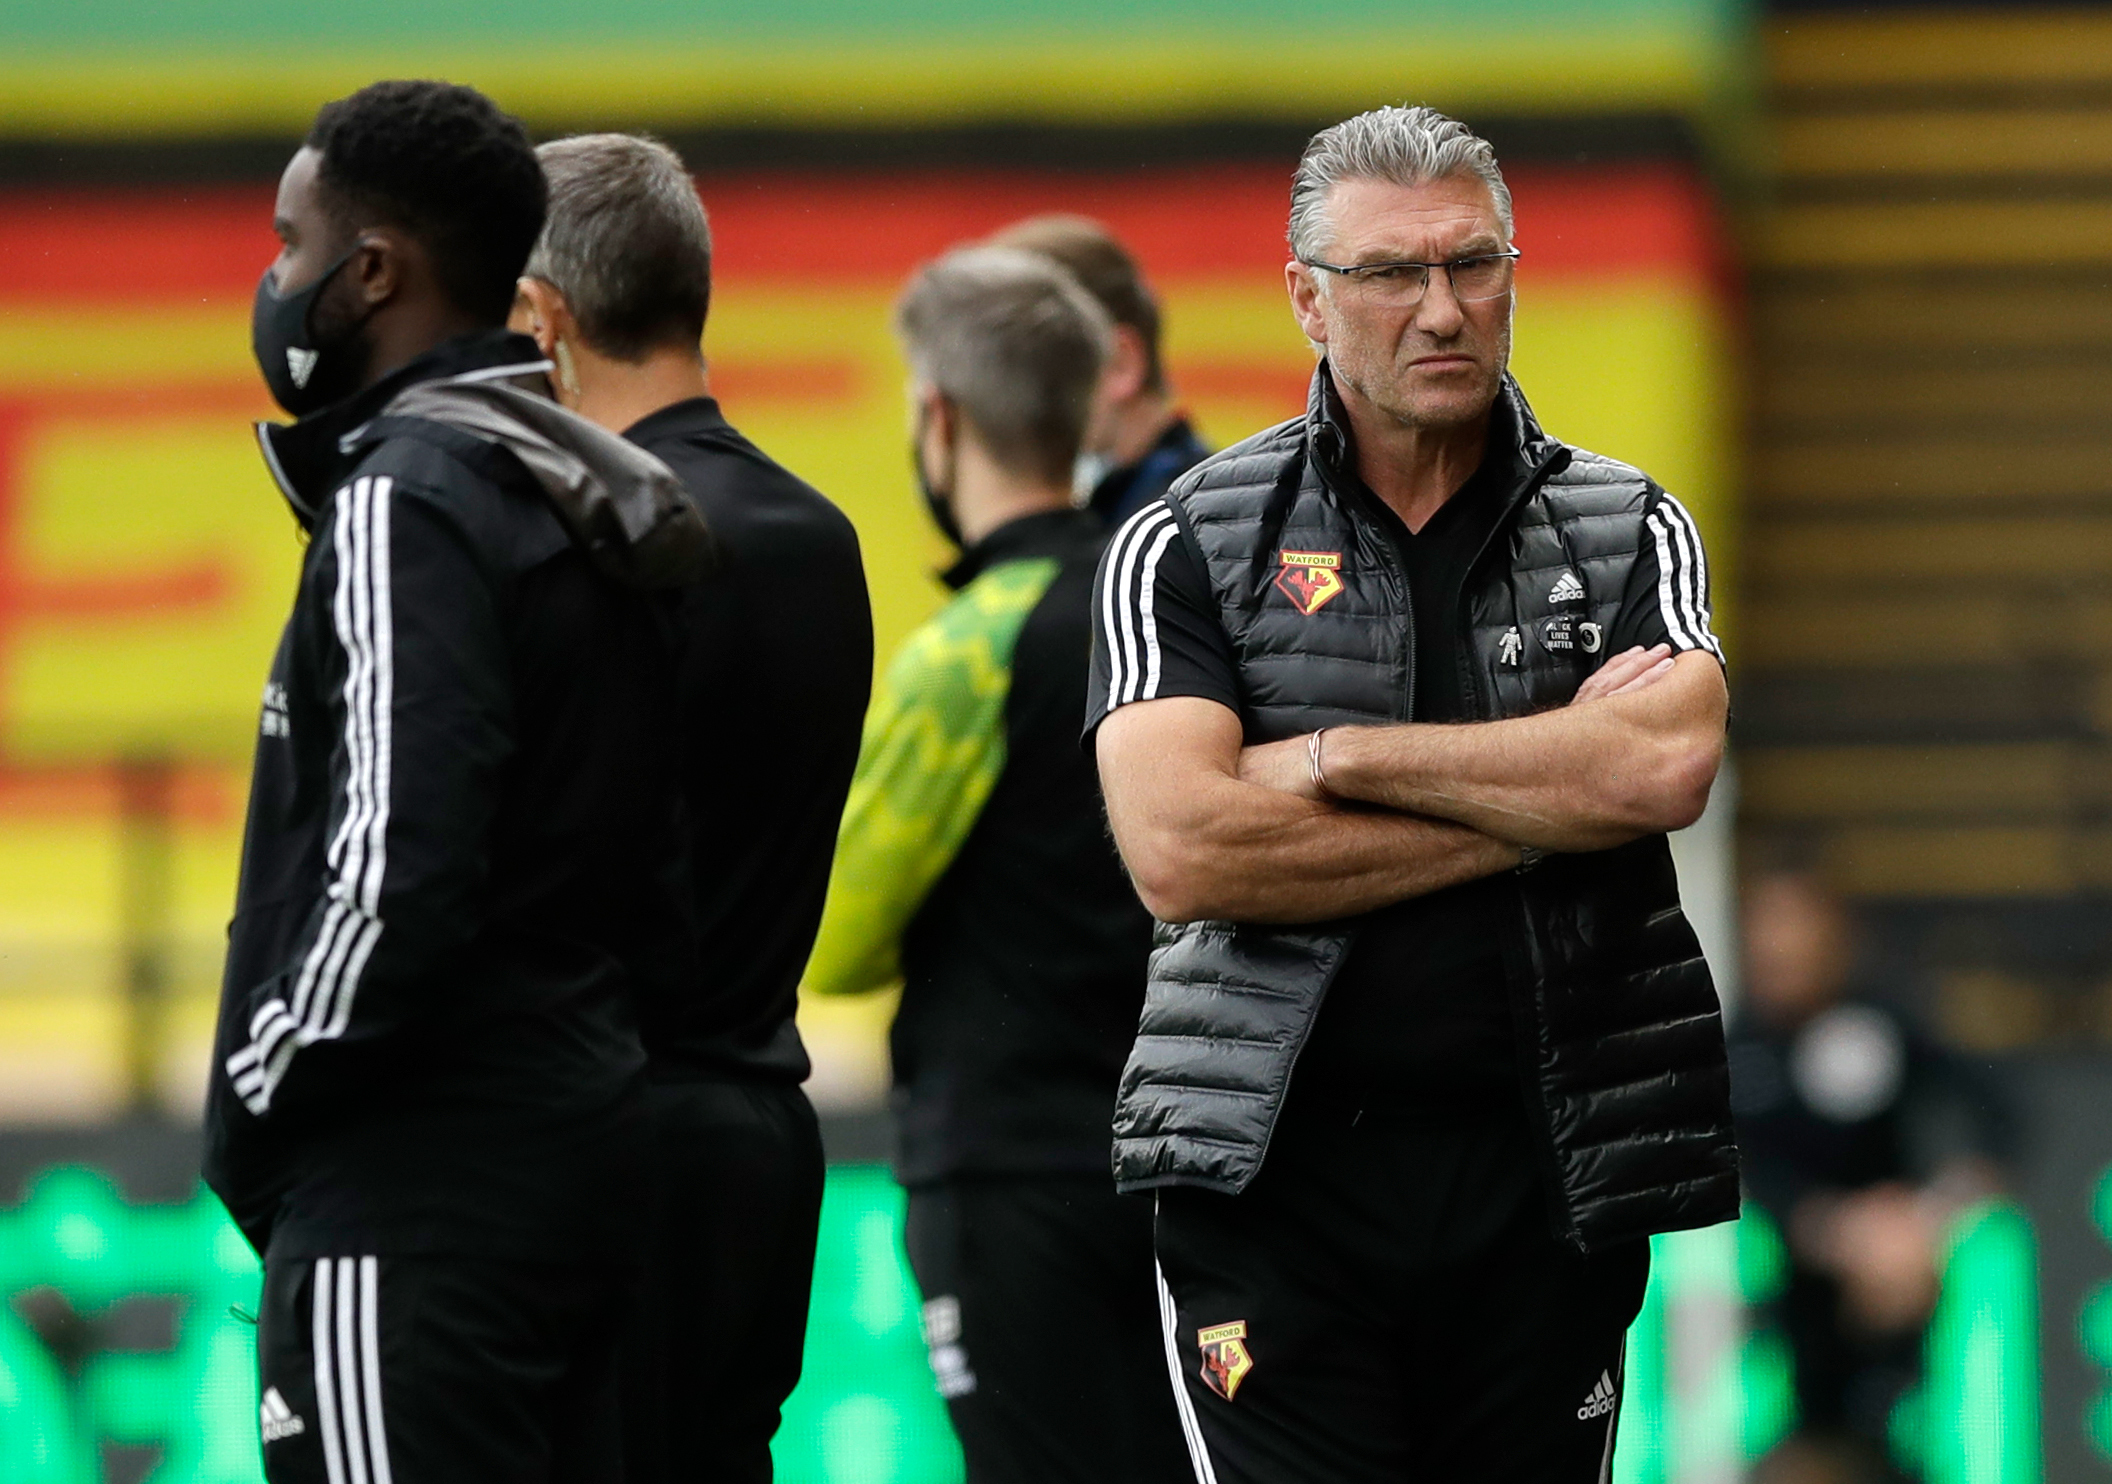 Watford manager Nigel Pearson during the warm up before the Premier League match at Vicarage Road, Watford.